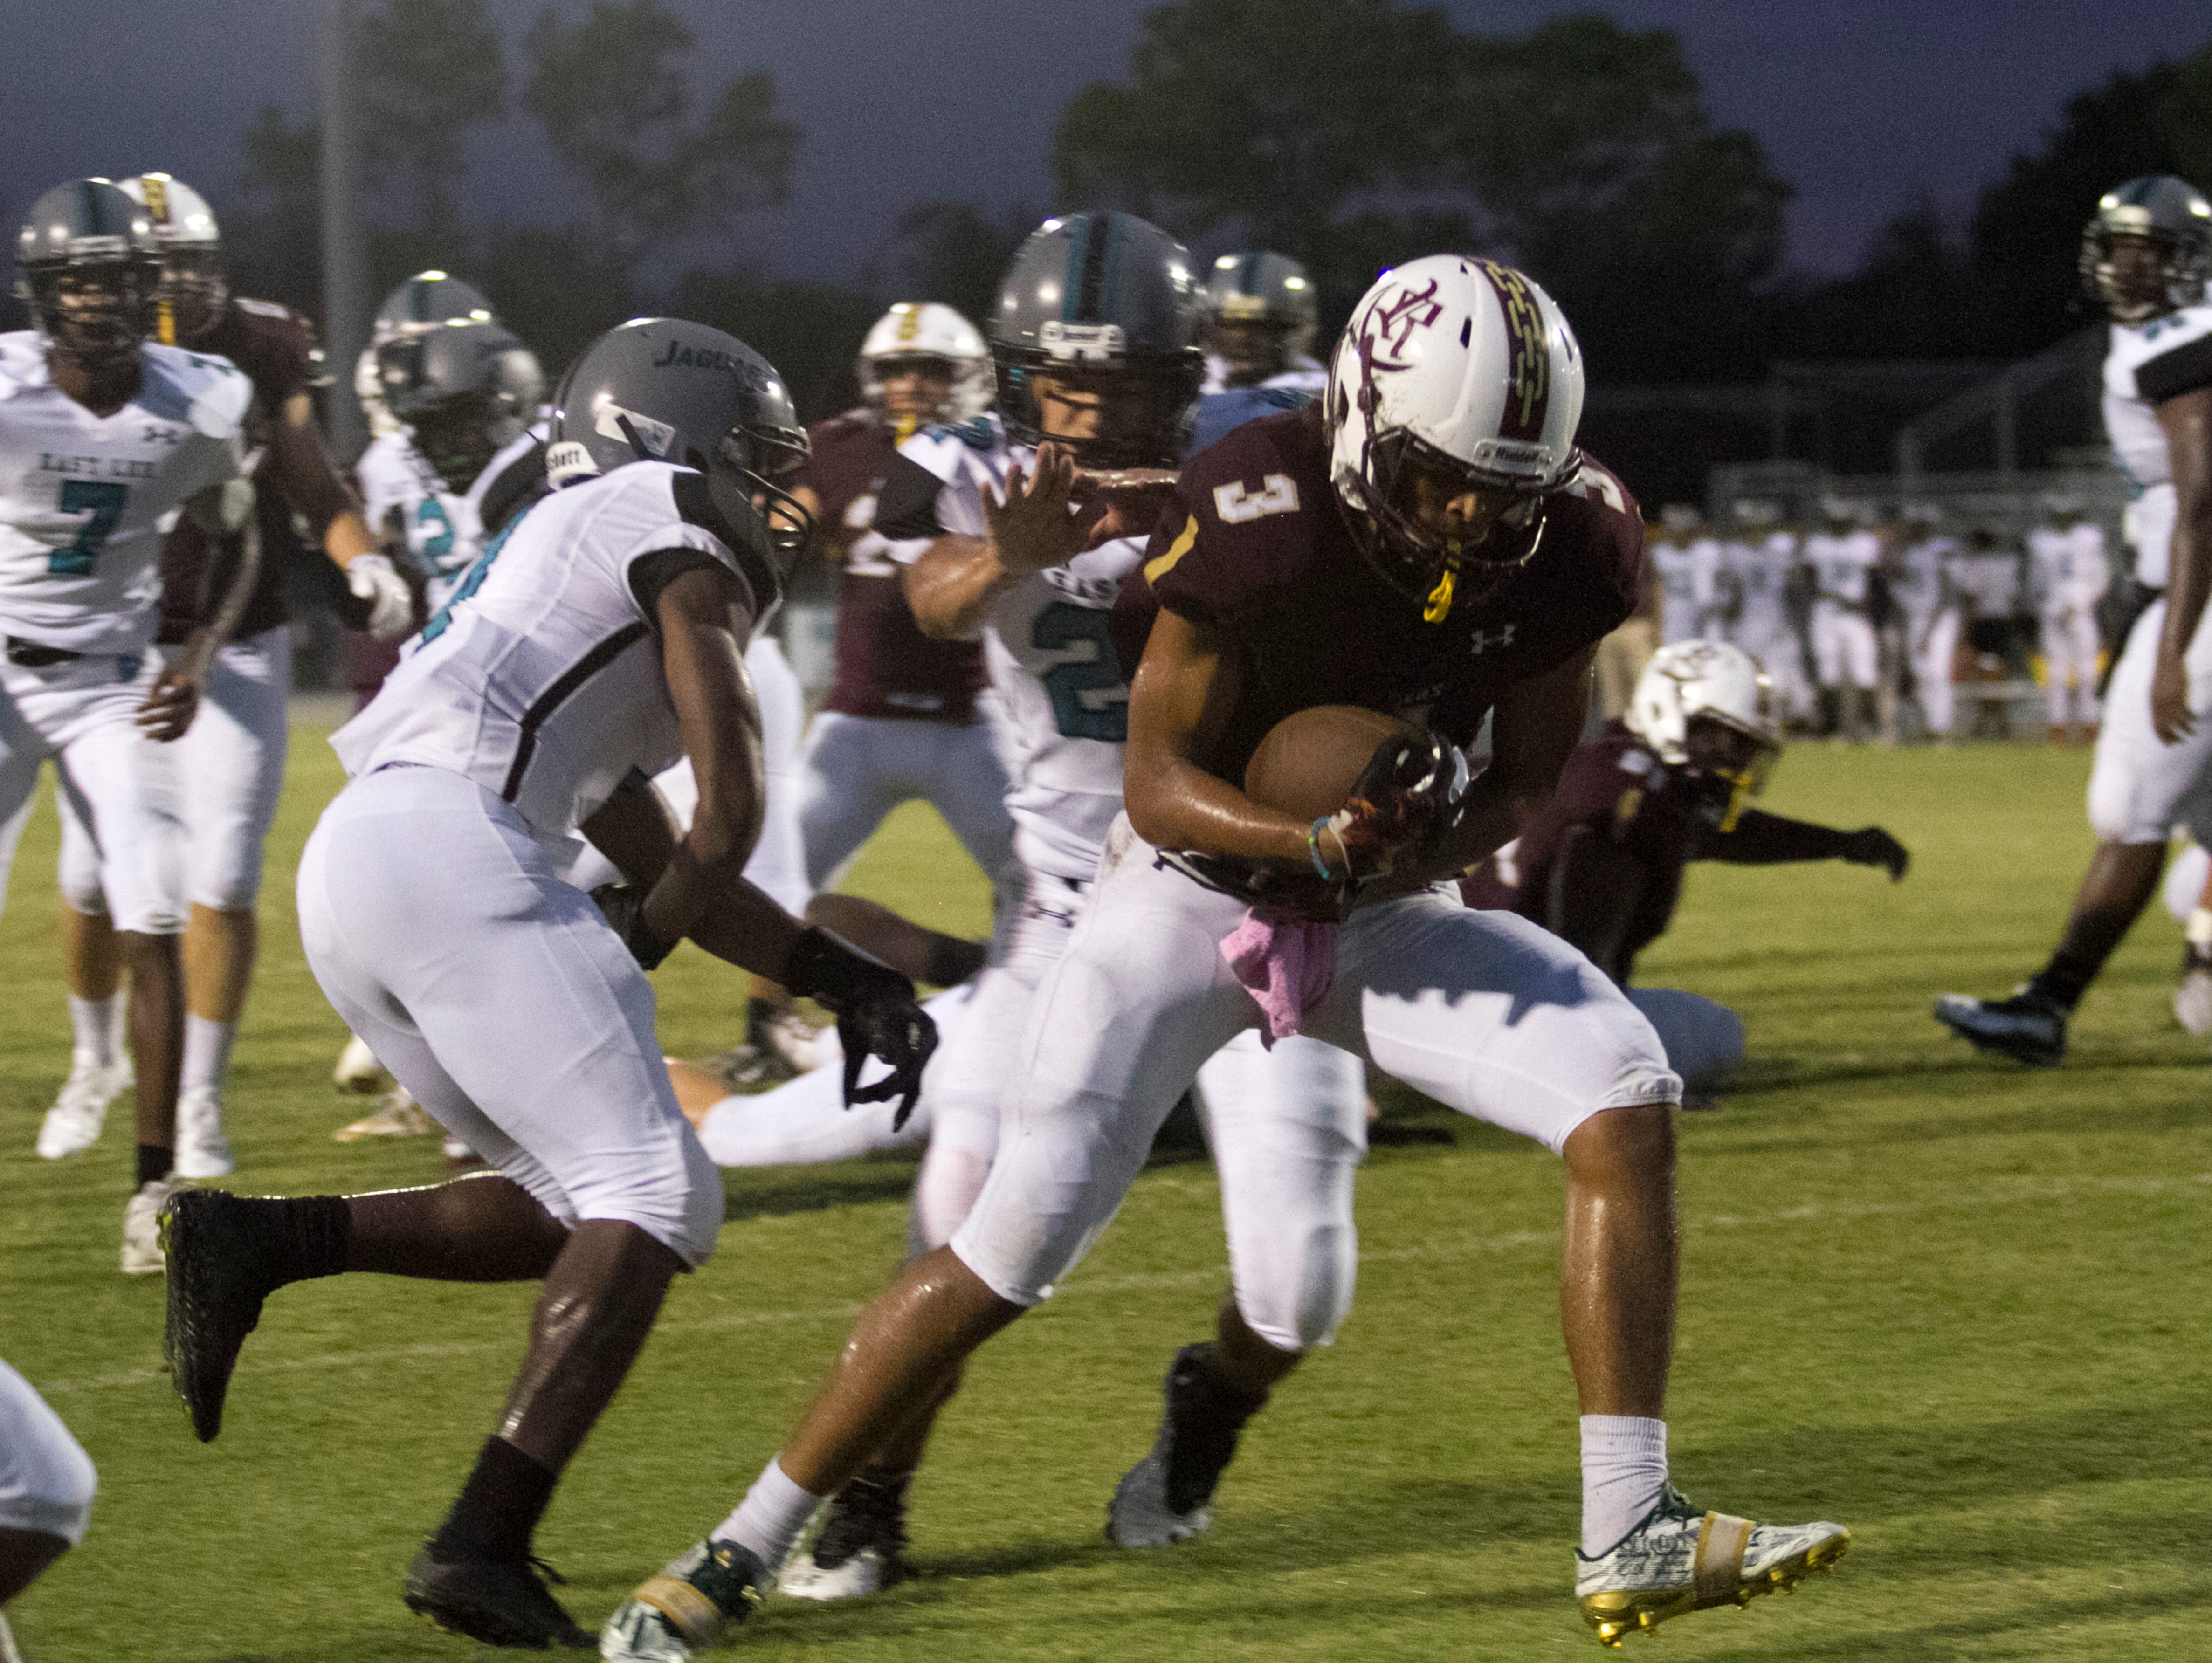 Riverdale's Jaylin Cochran scores the first touchdown against East Lee on Friday, September 16, 2016, at Riverdale High School.